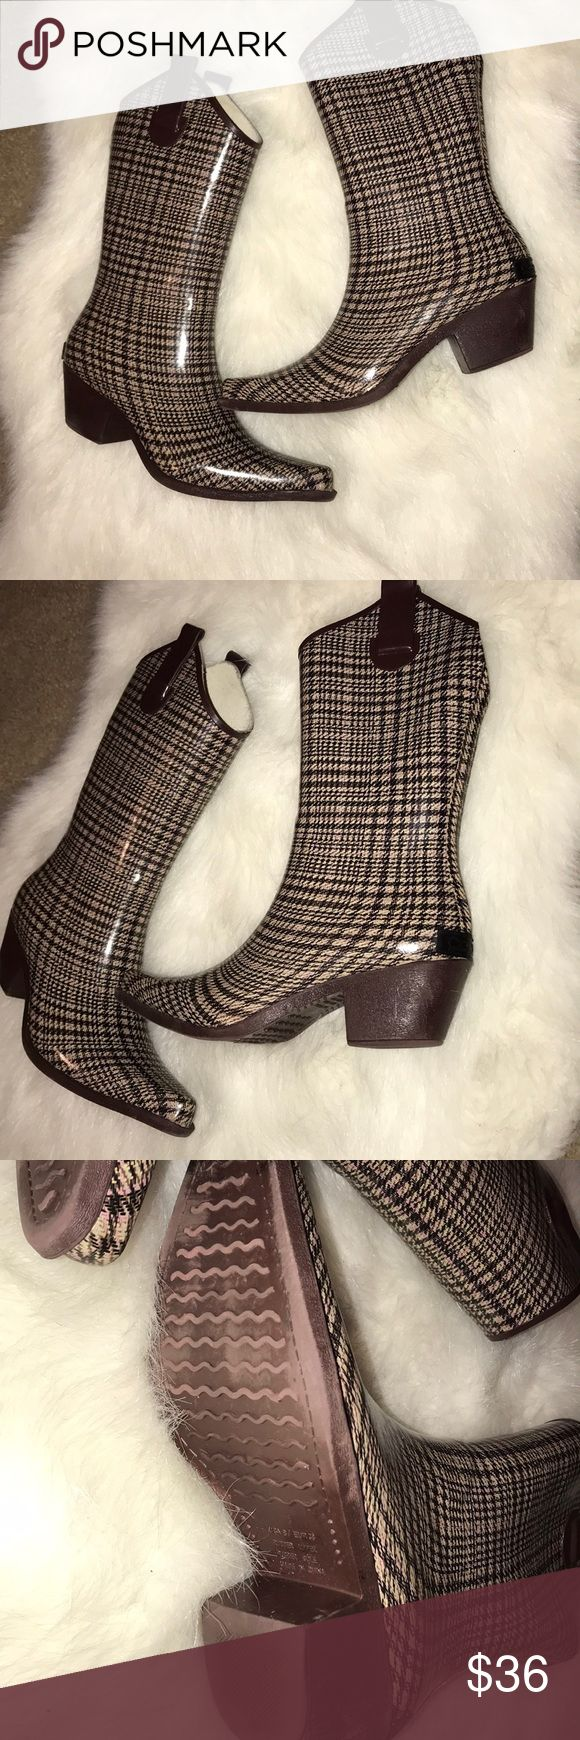 Plaid rain boots Plaid rain boots. Very gently used. Only flaw is on one Boot black label is chipped off. See photo Corkys Shoes Winter & Rain Boots